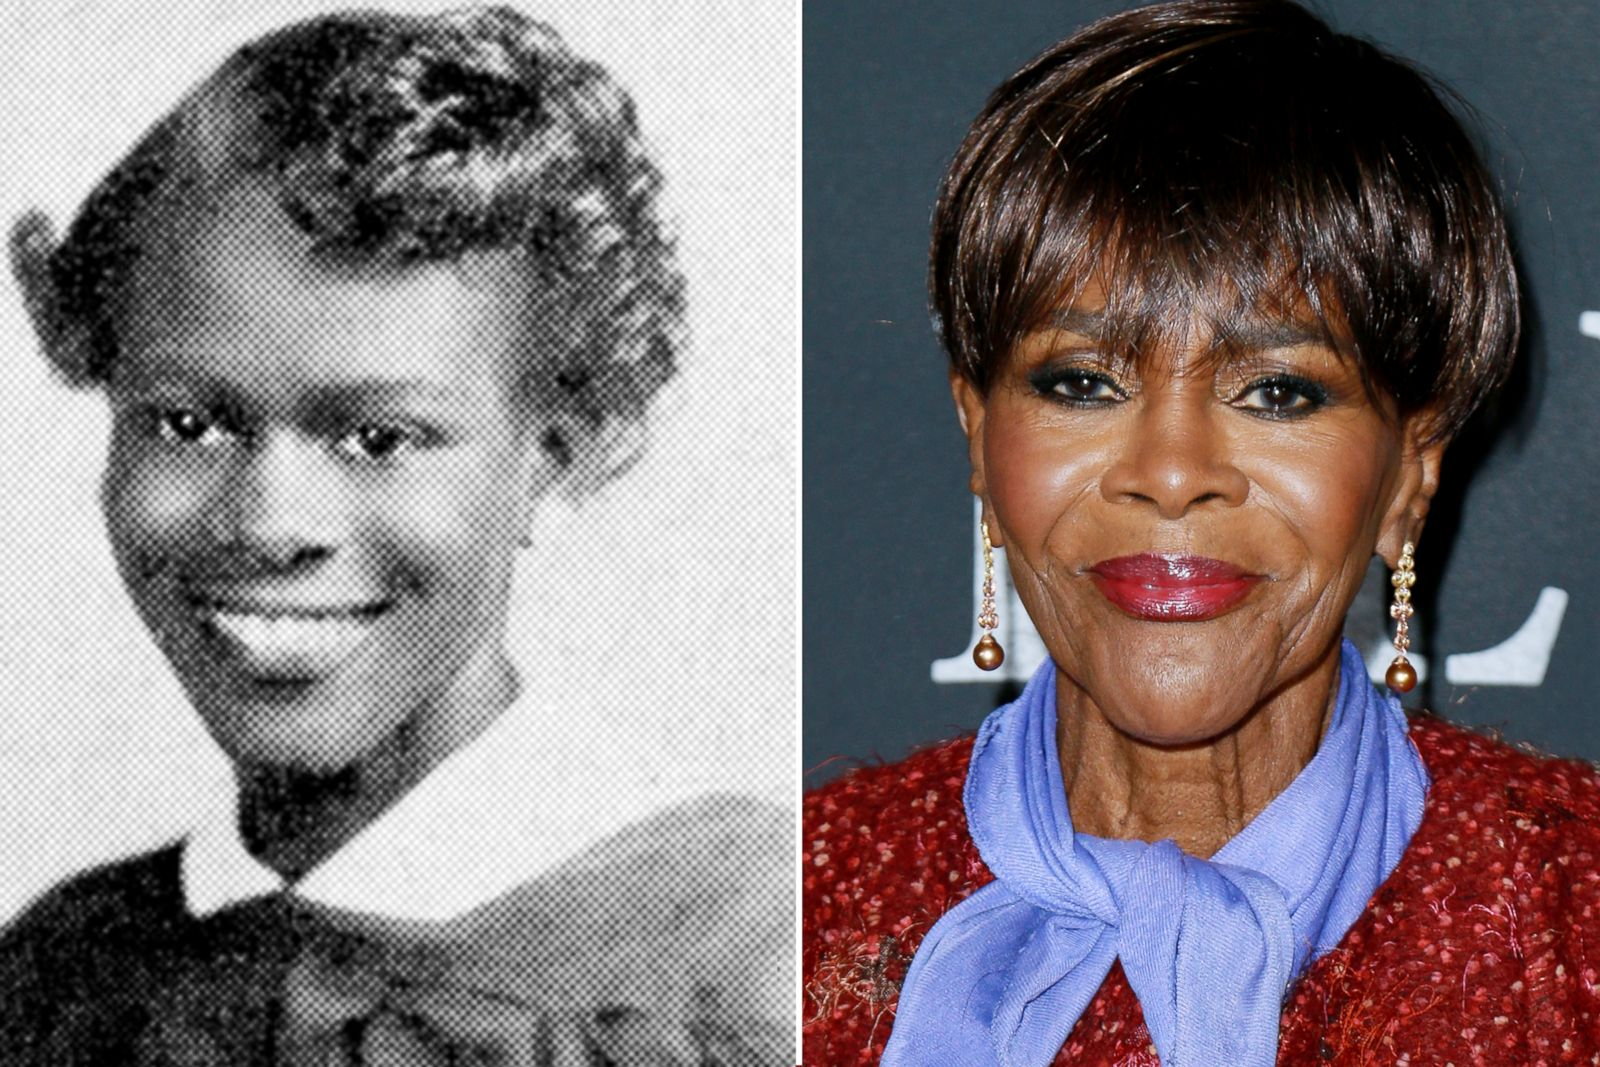 ' ' from the web at 'https://s.abcnews.com/images/Entertainment/cicely-tyson-ht-gty-ml-171219_3x2_1600.jpg'